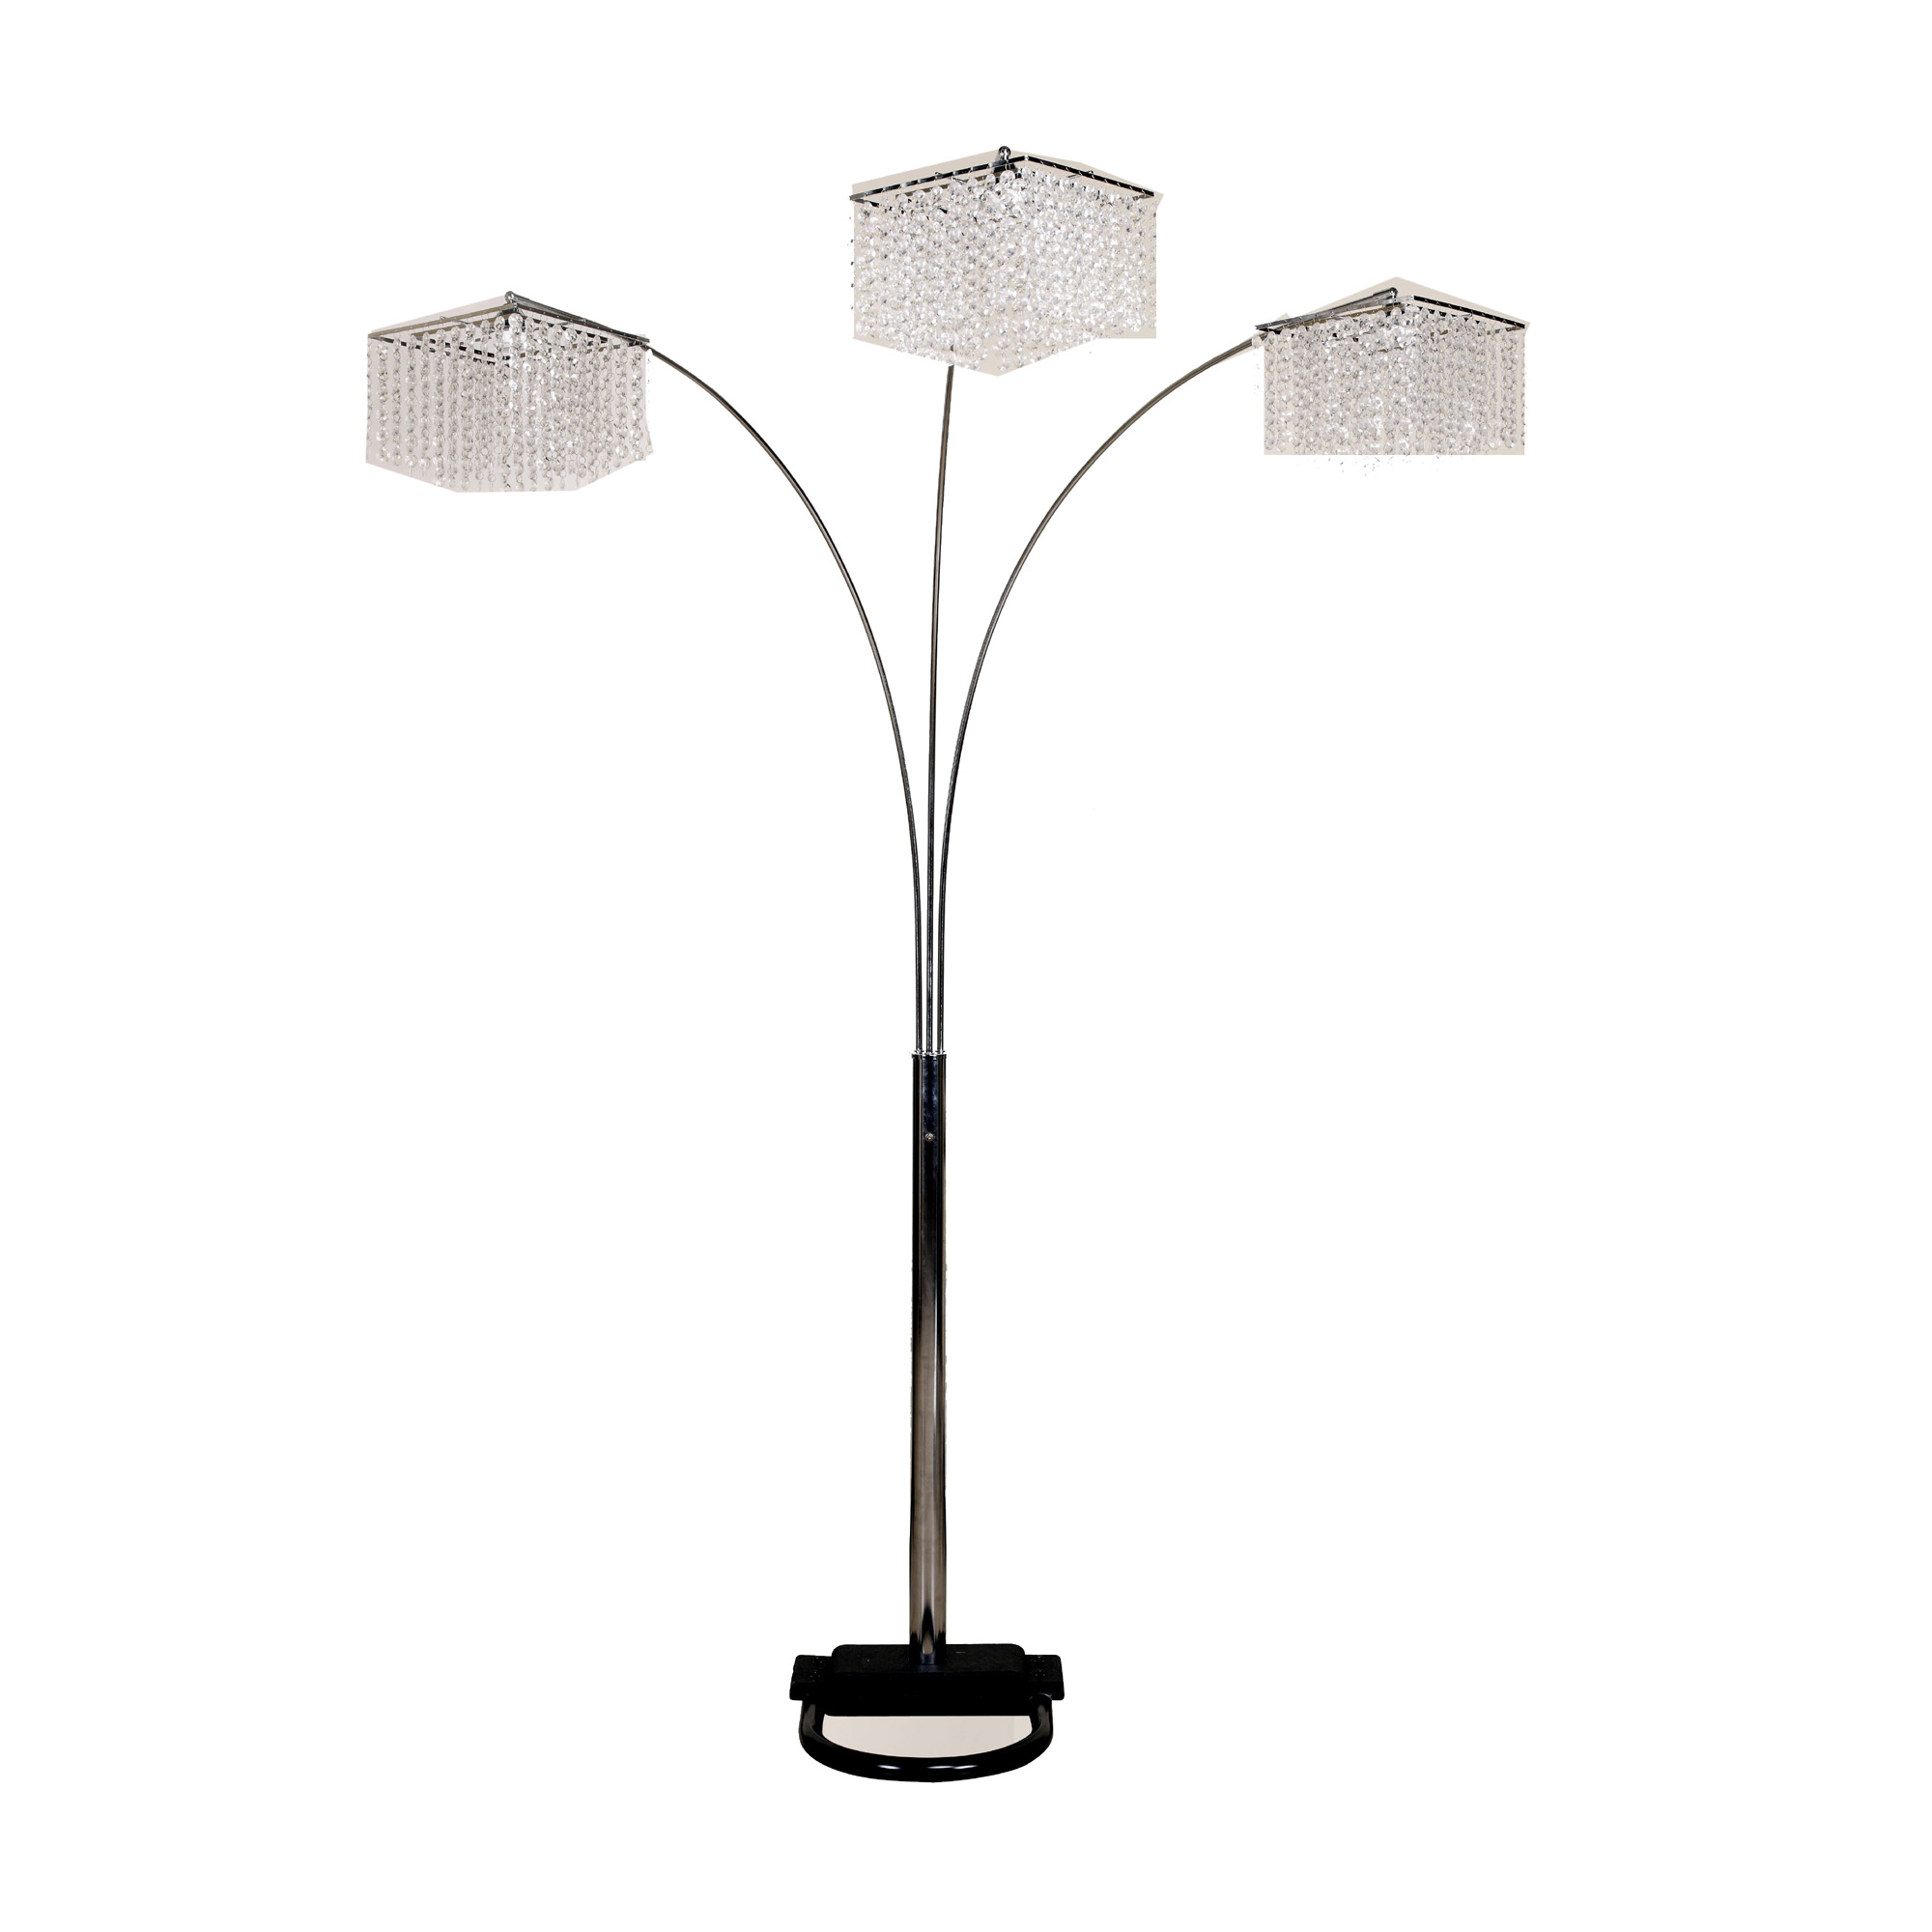 Ore International 6932 Inspirational 3 Light Crystal Arch Floor Lamp |  Hayneedle